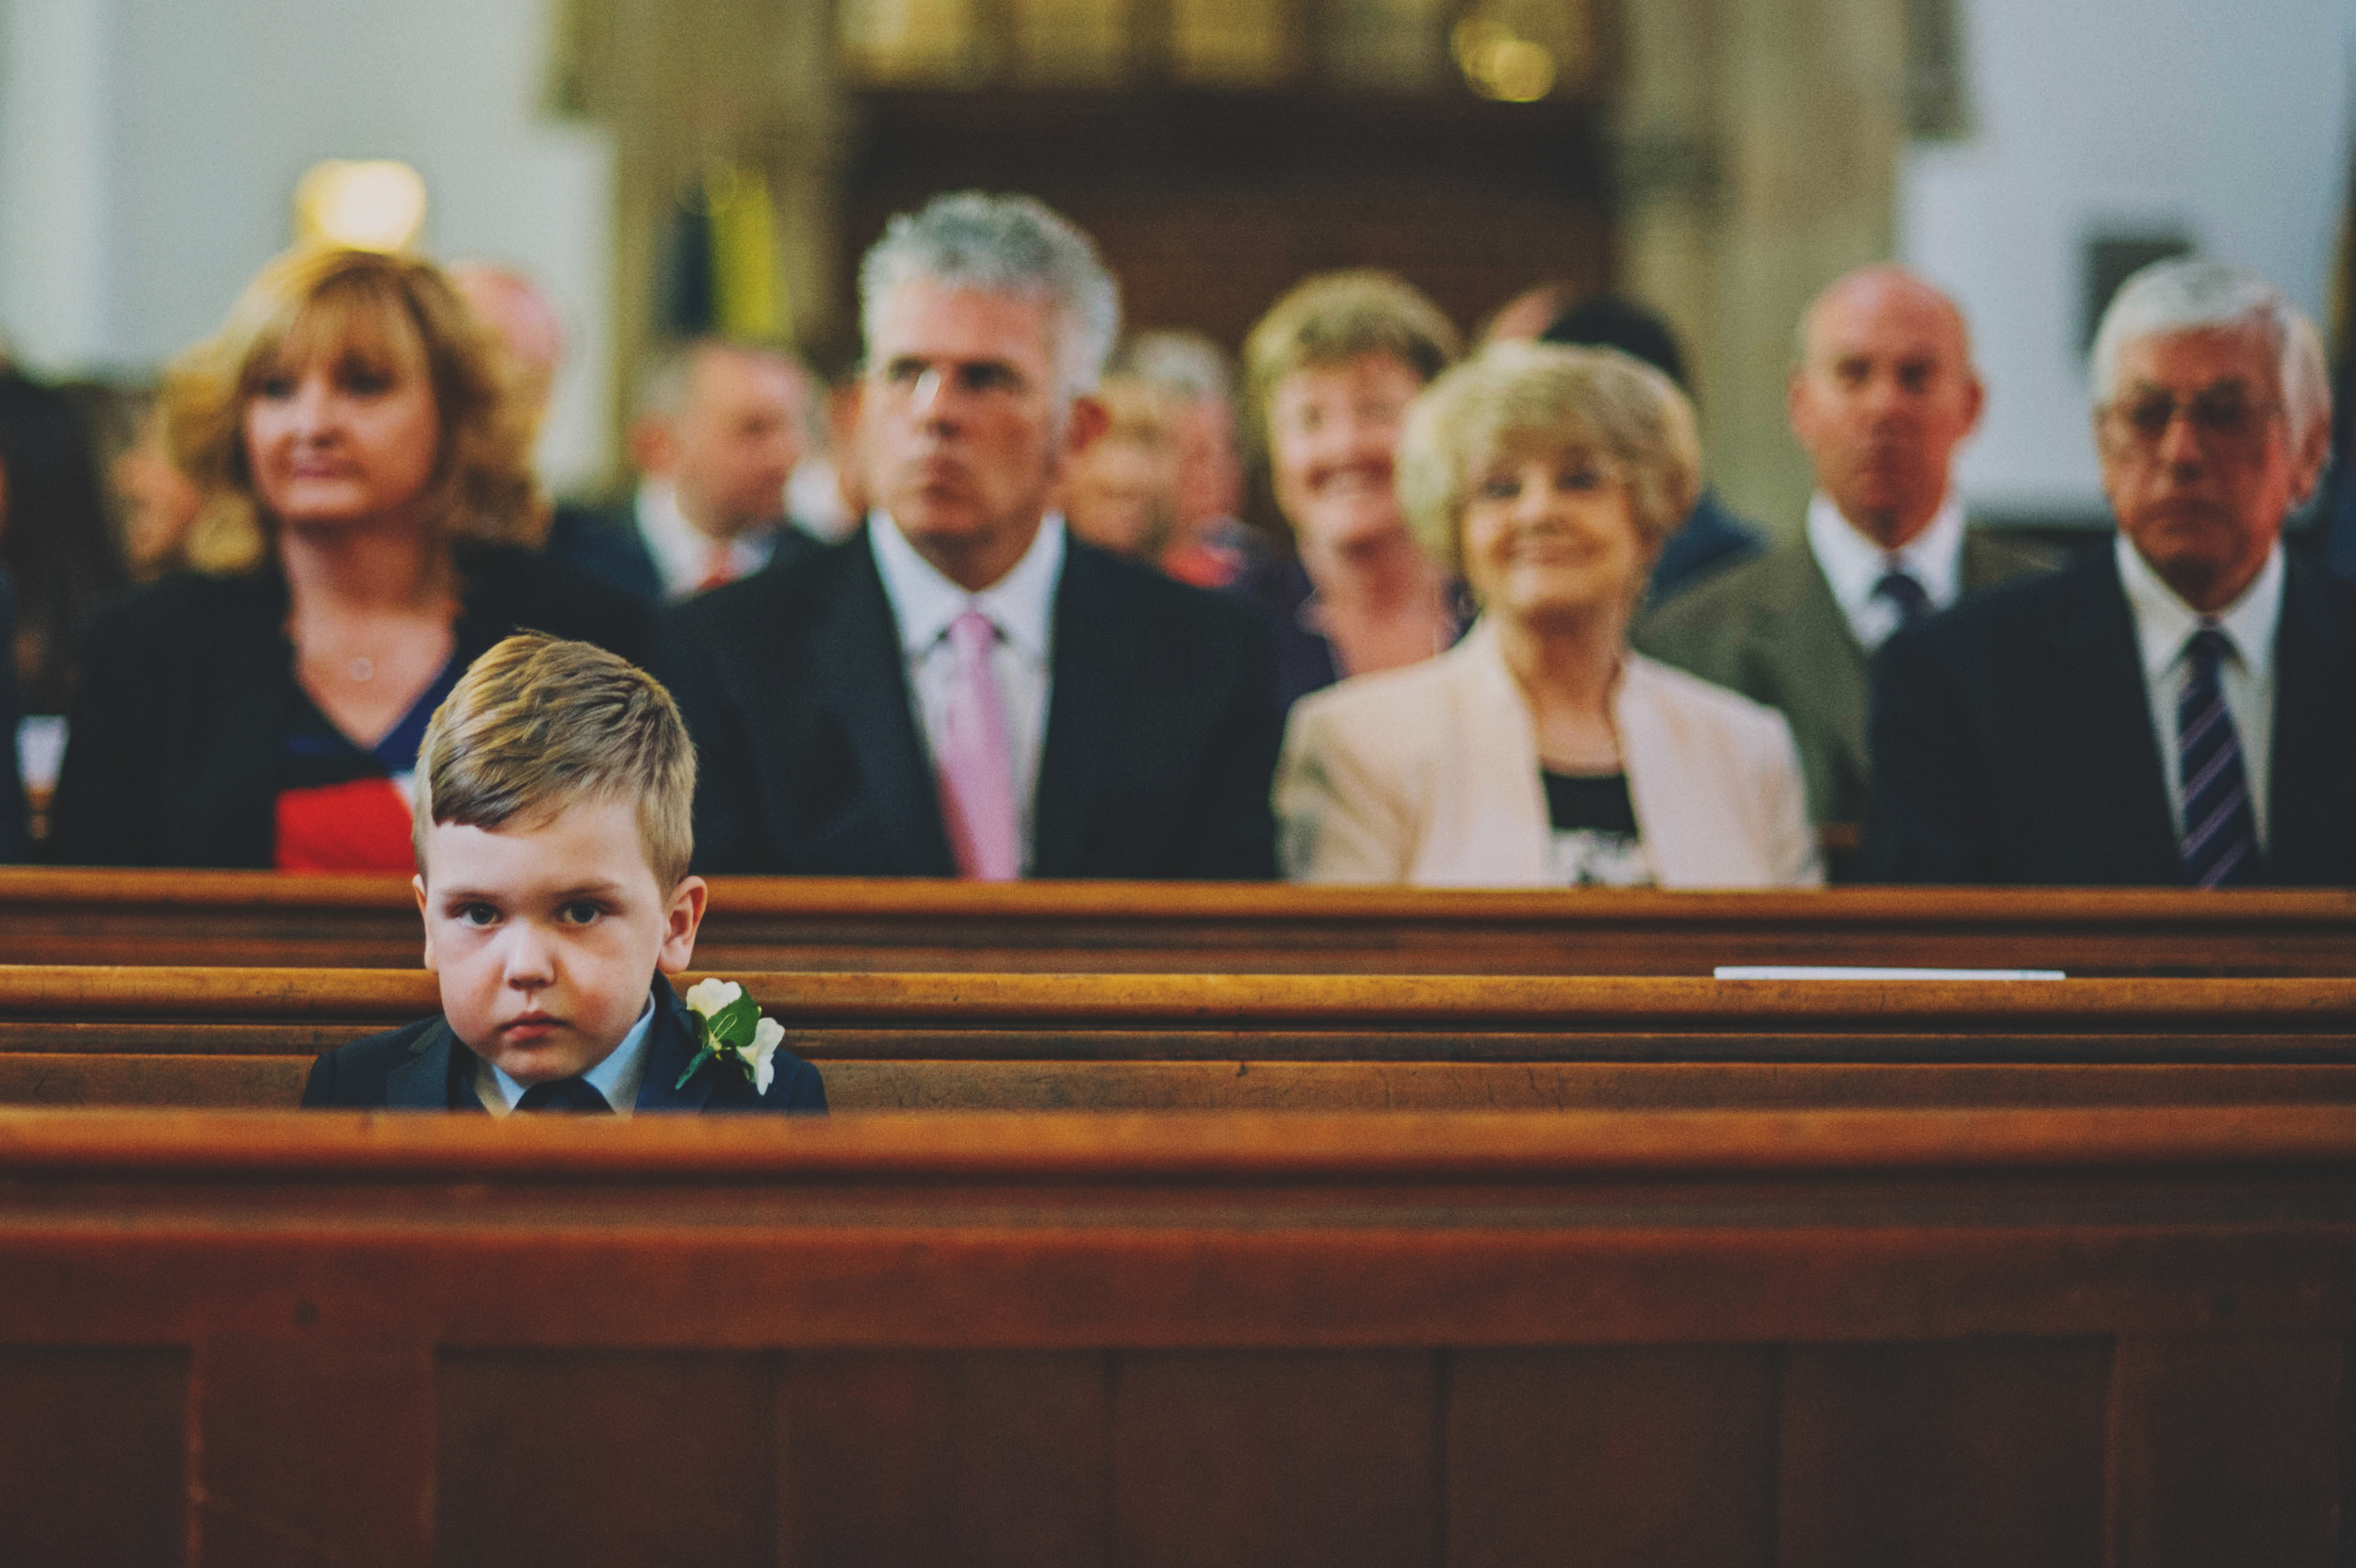 Grumpy page boy in church Rustic Blake Hall Essex UK Documentary Wedding Photographer